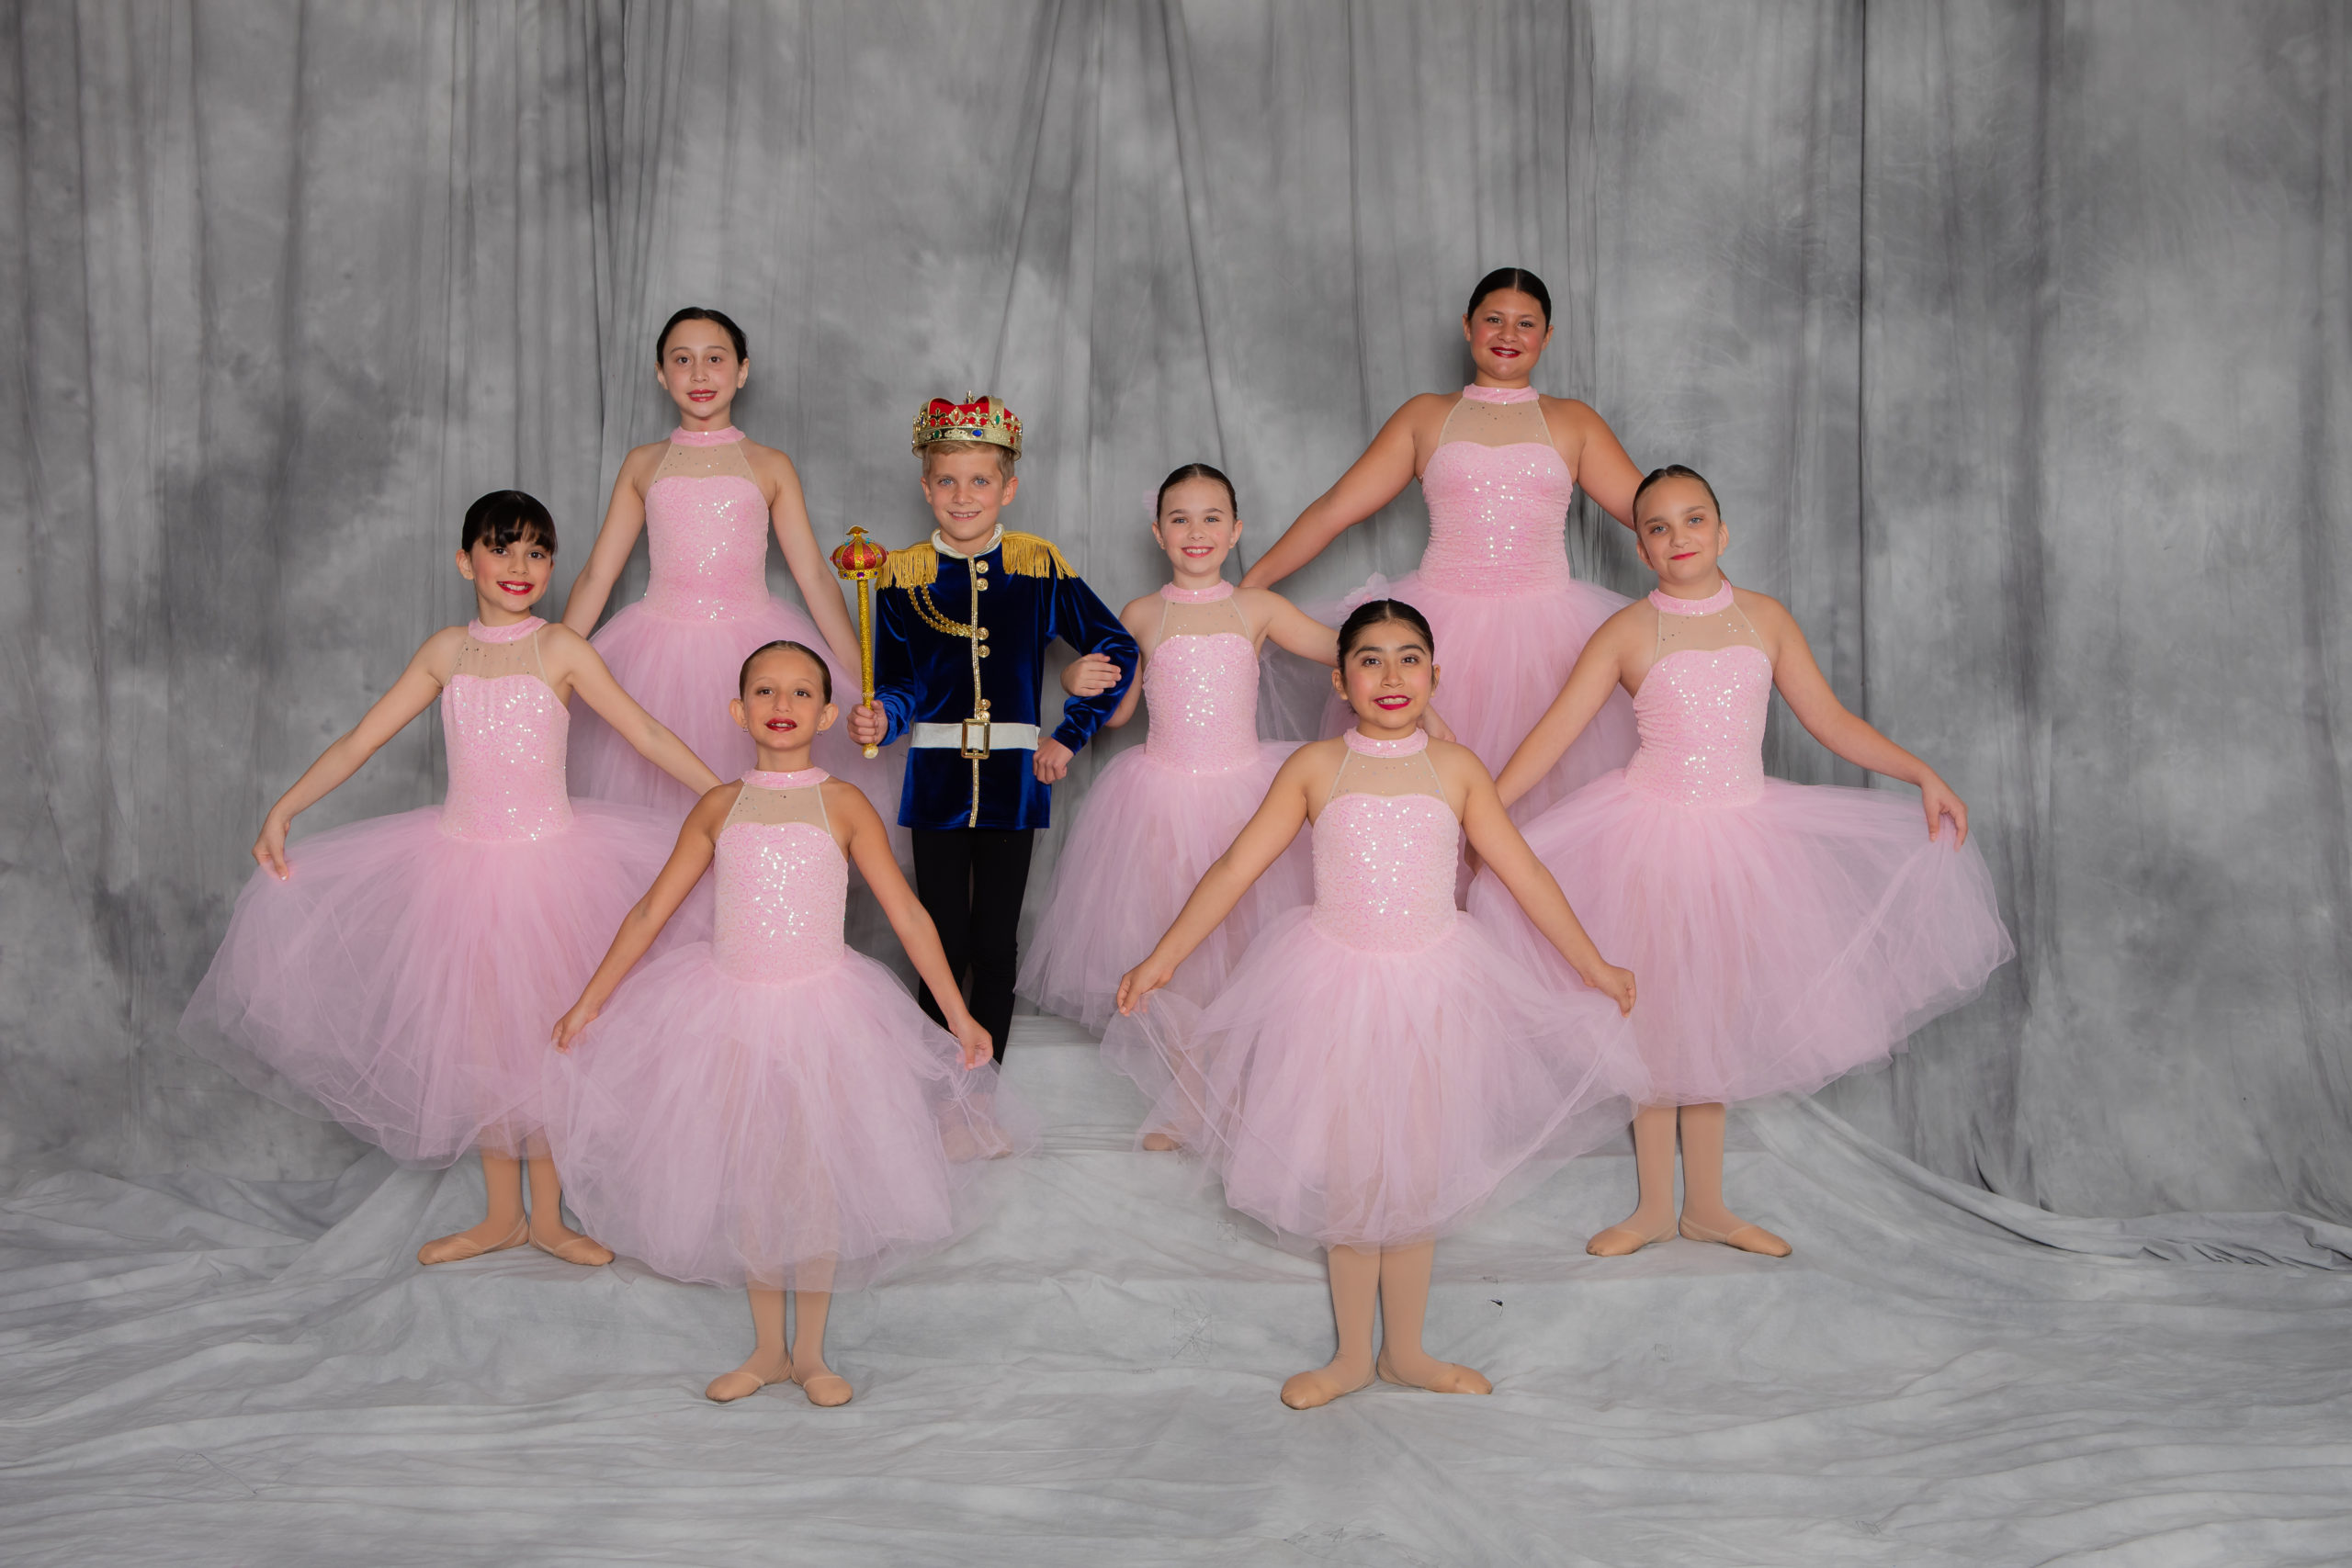 Tap, jazz and ballet dance classes for ages 8 and older